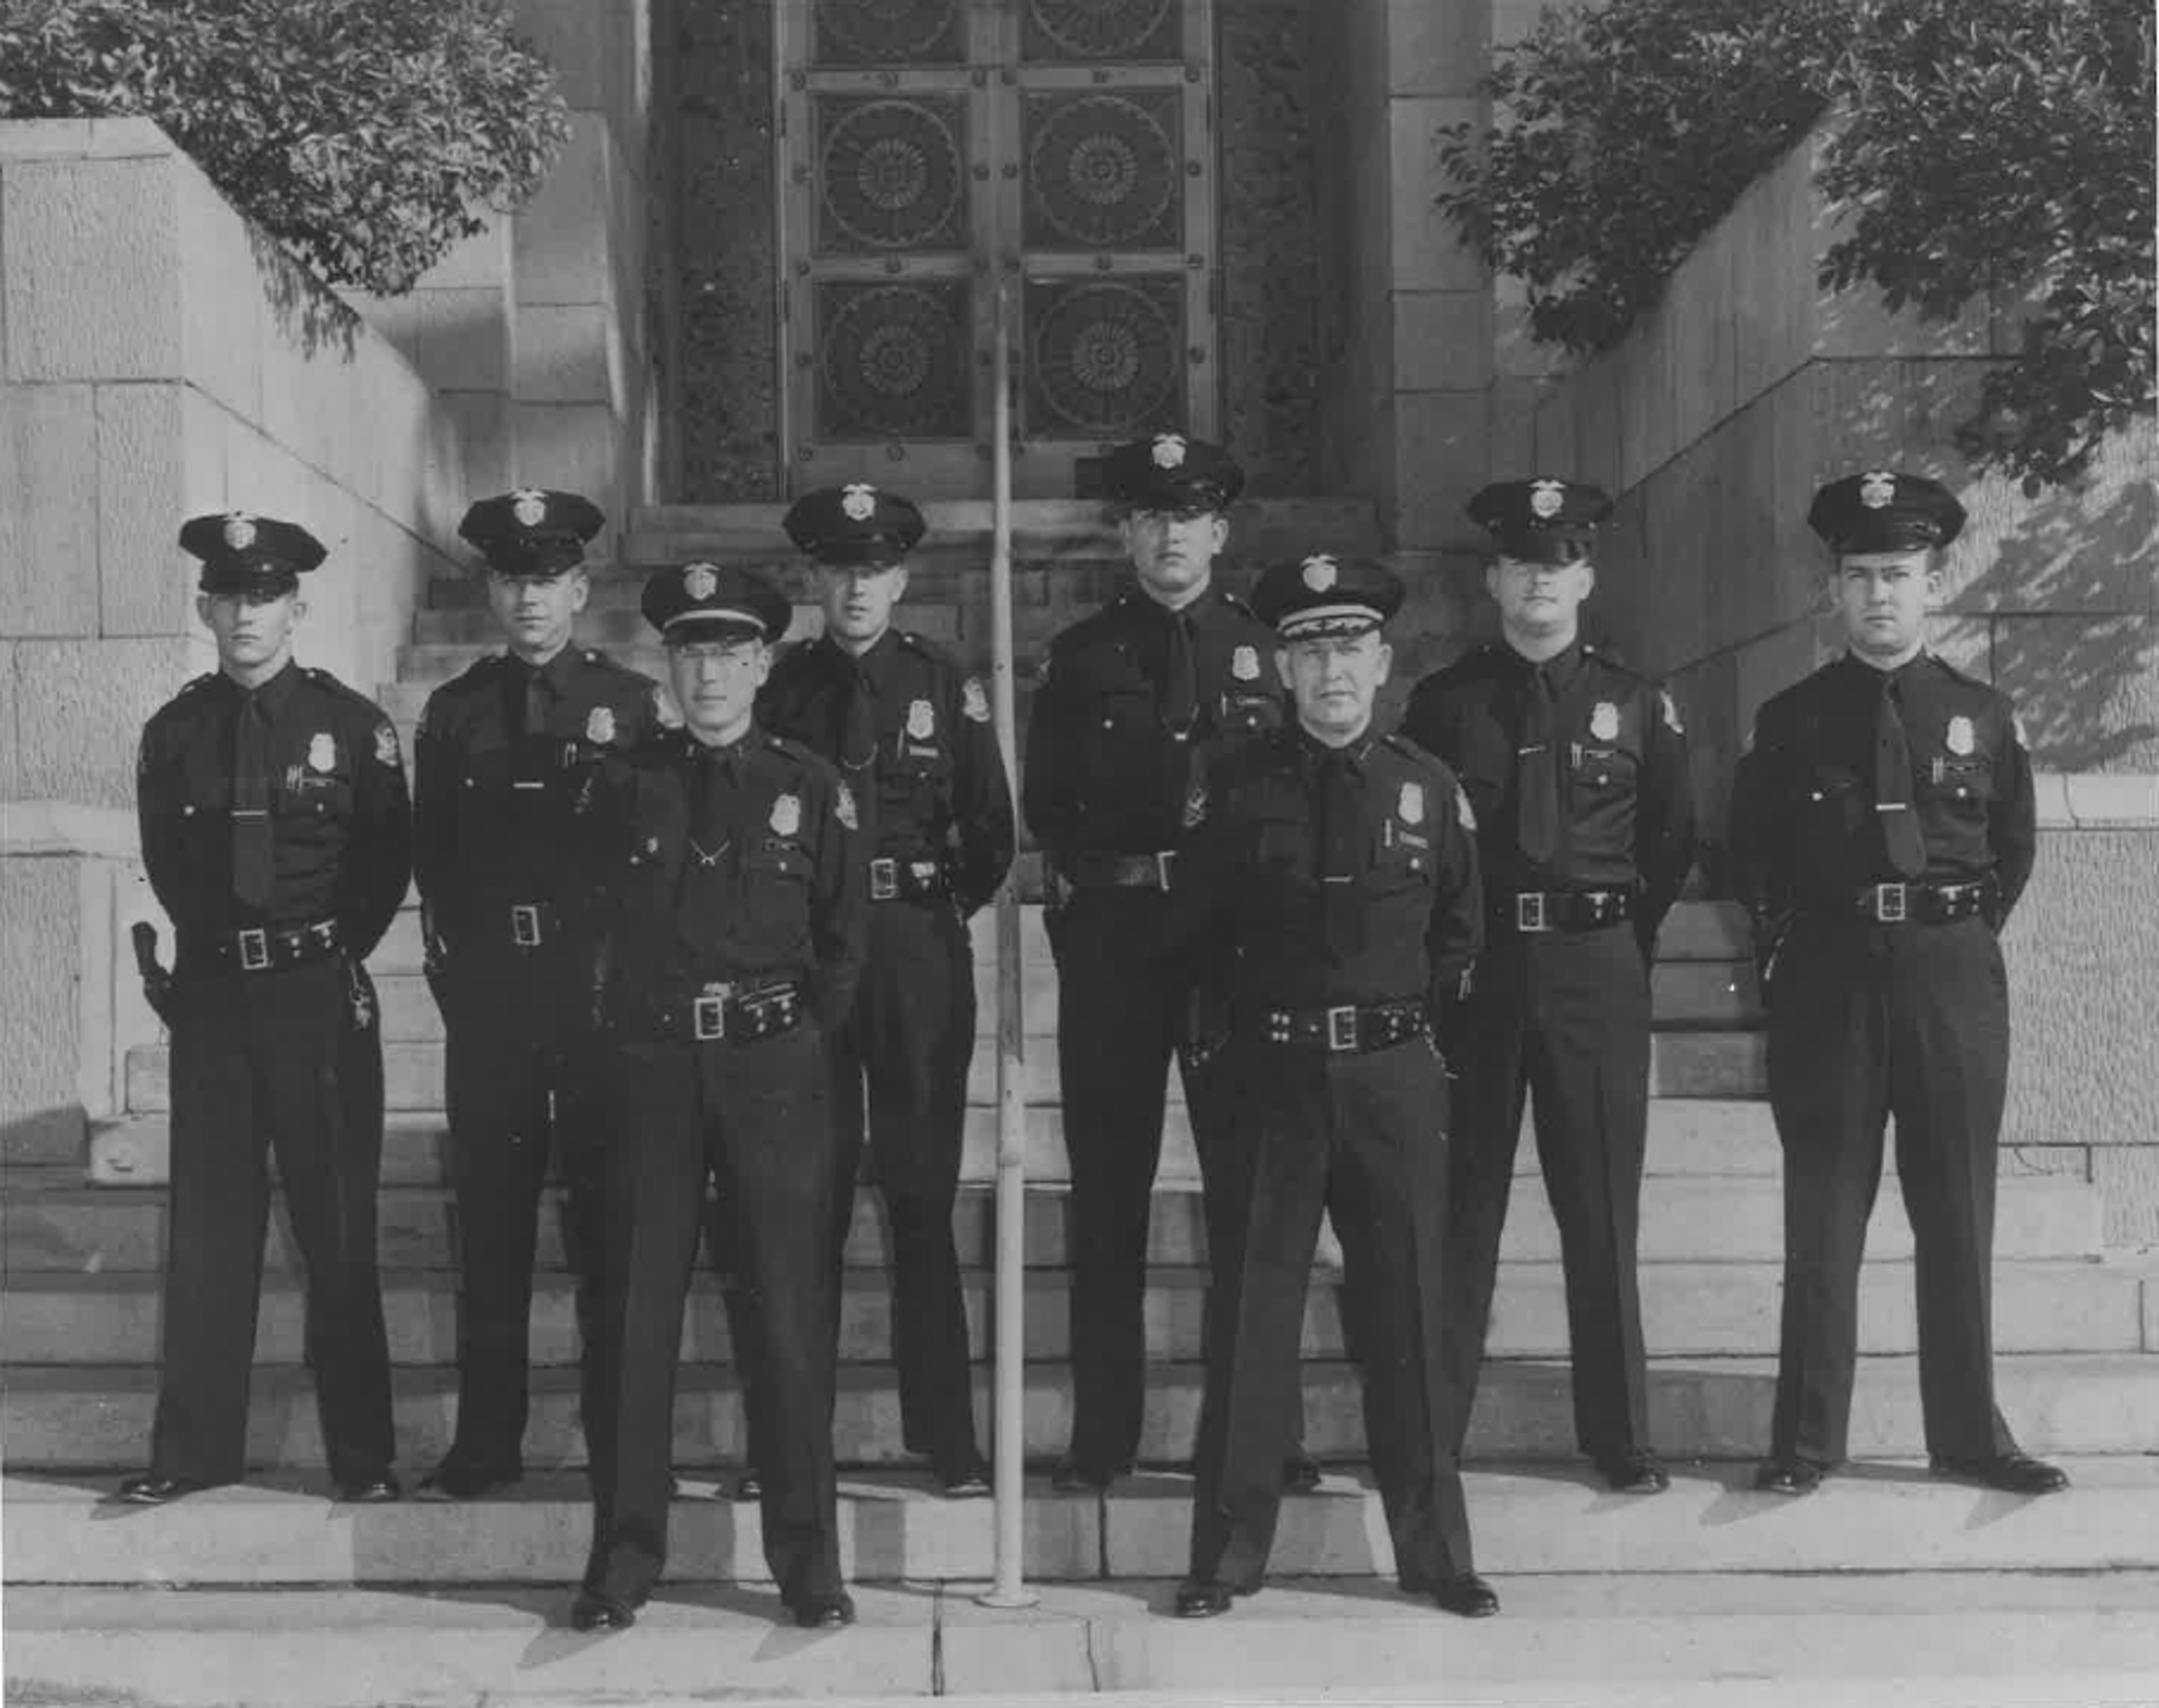 The Phoenix Police Academy class of 1958 poses for a photo. Manny Quiñonez is fourth from the left in the back row.